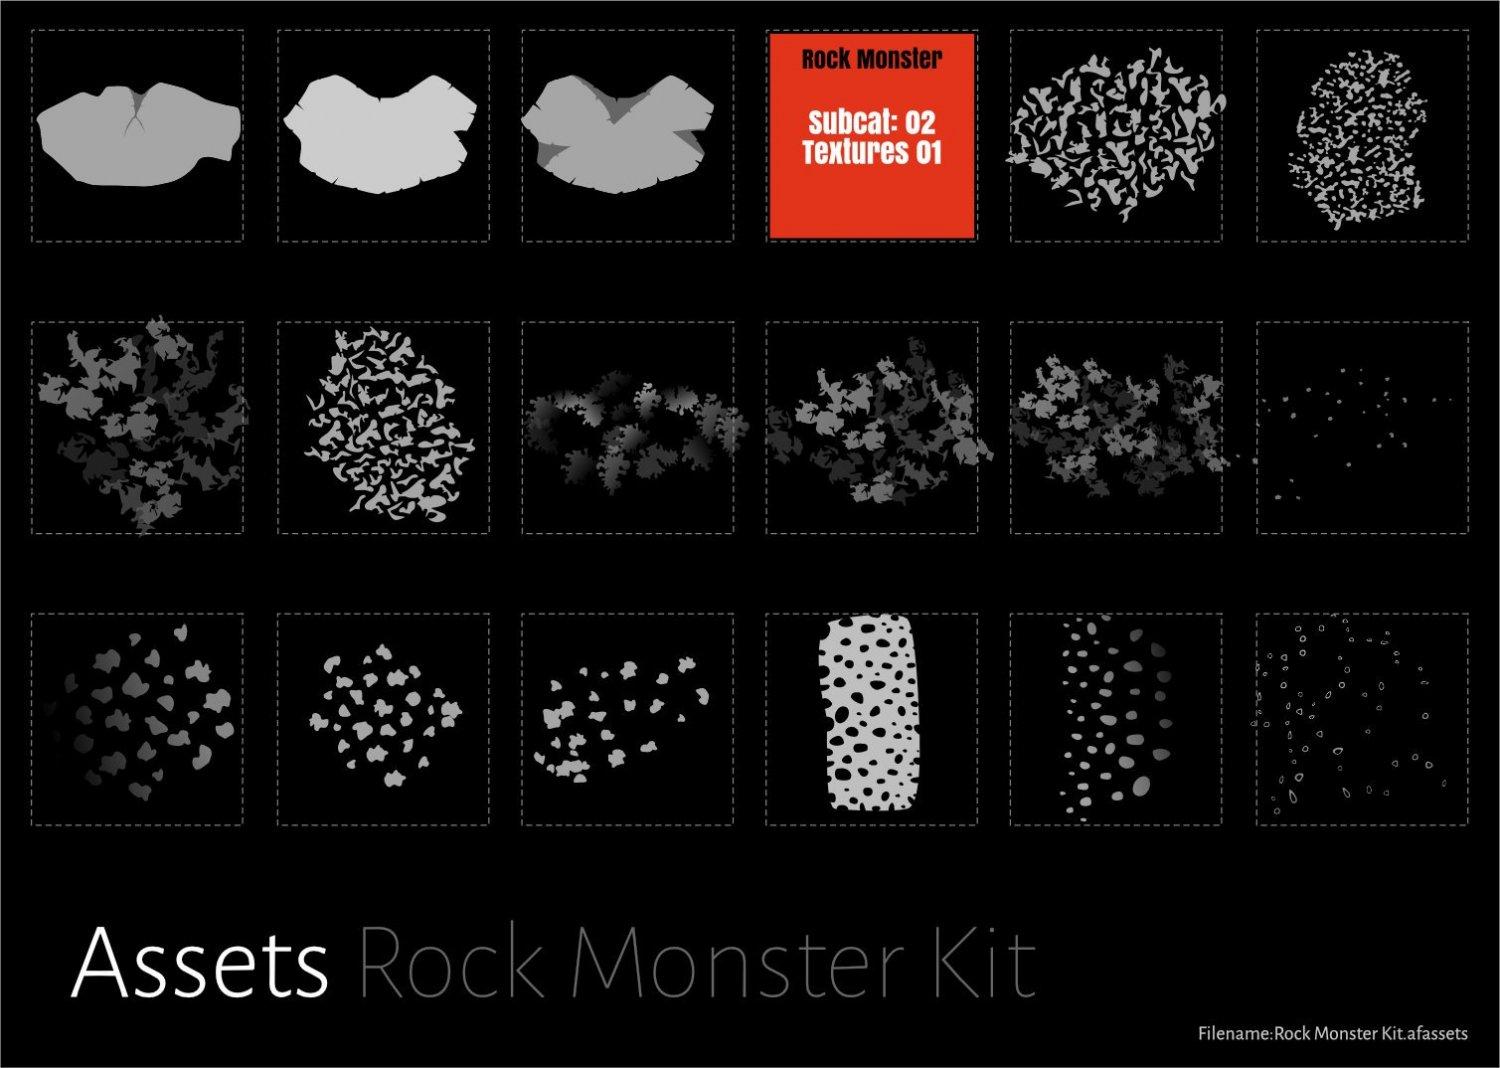 Rock Monster Kit 02@0.3x.jpg